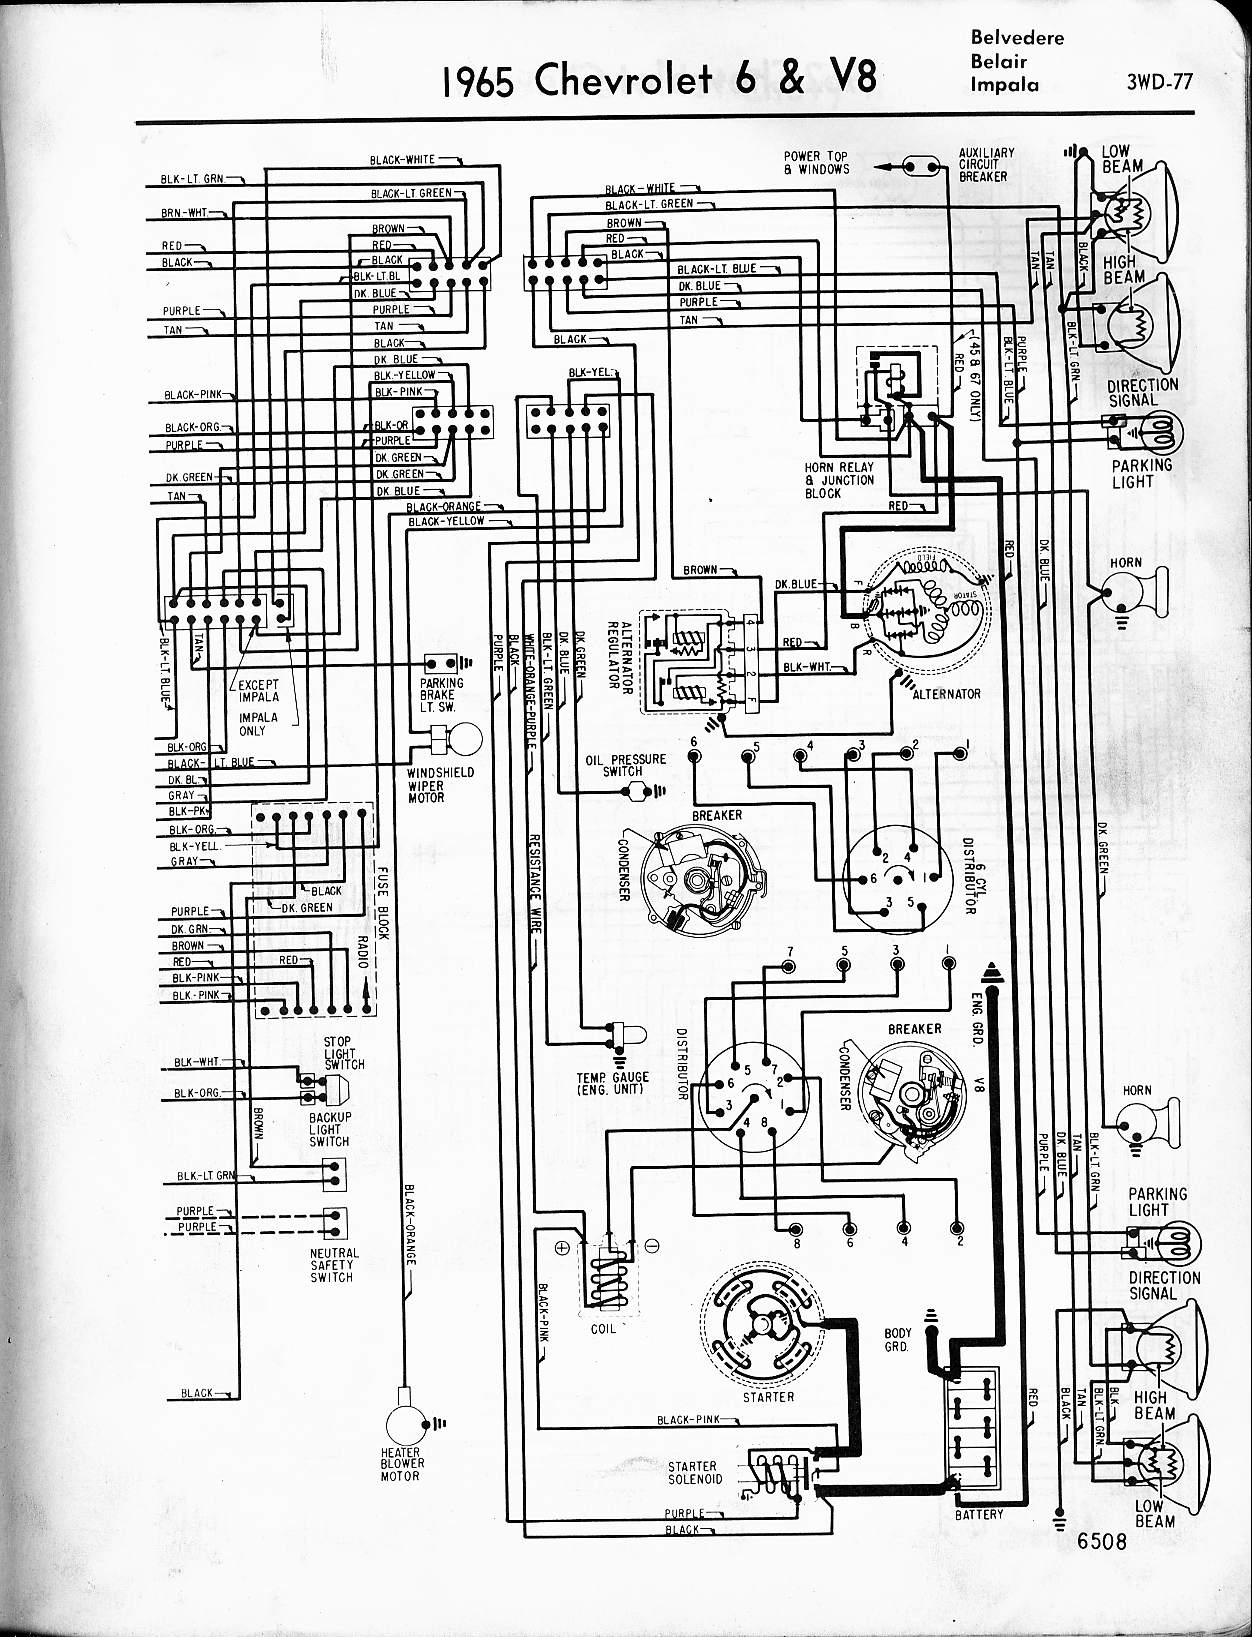 MWireChev65_3WD 077 69 chevelle wiring diagram 69 chevelle engine wiring diagram 1967 chevelle wiring diagram pdf at reclaimingppi.co